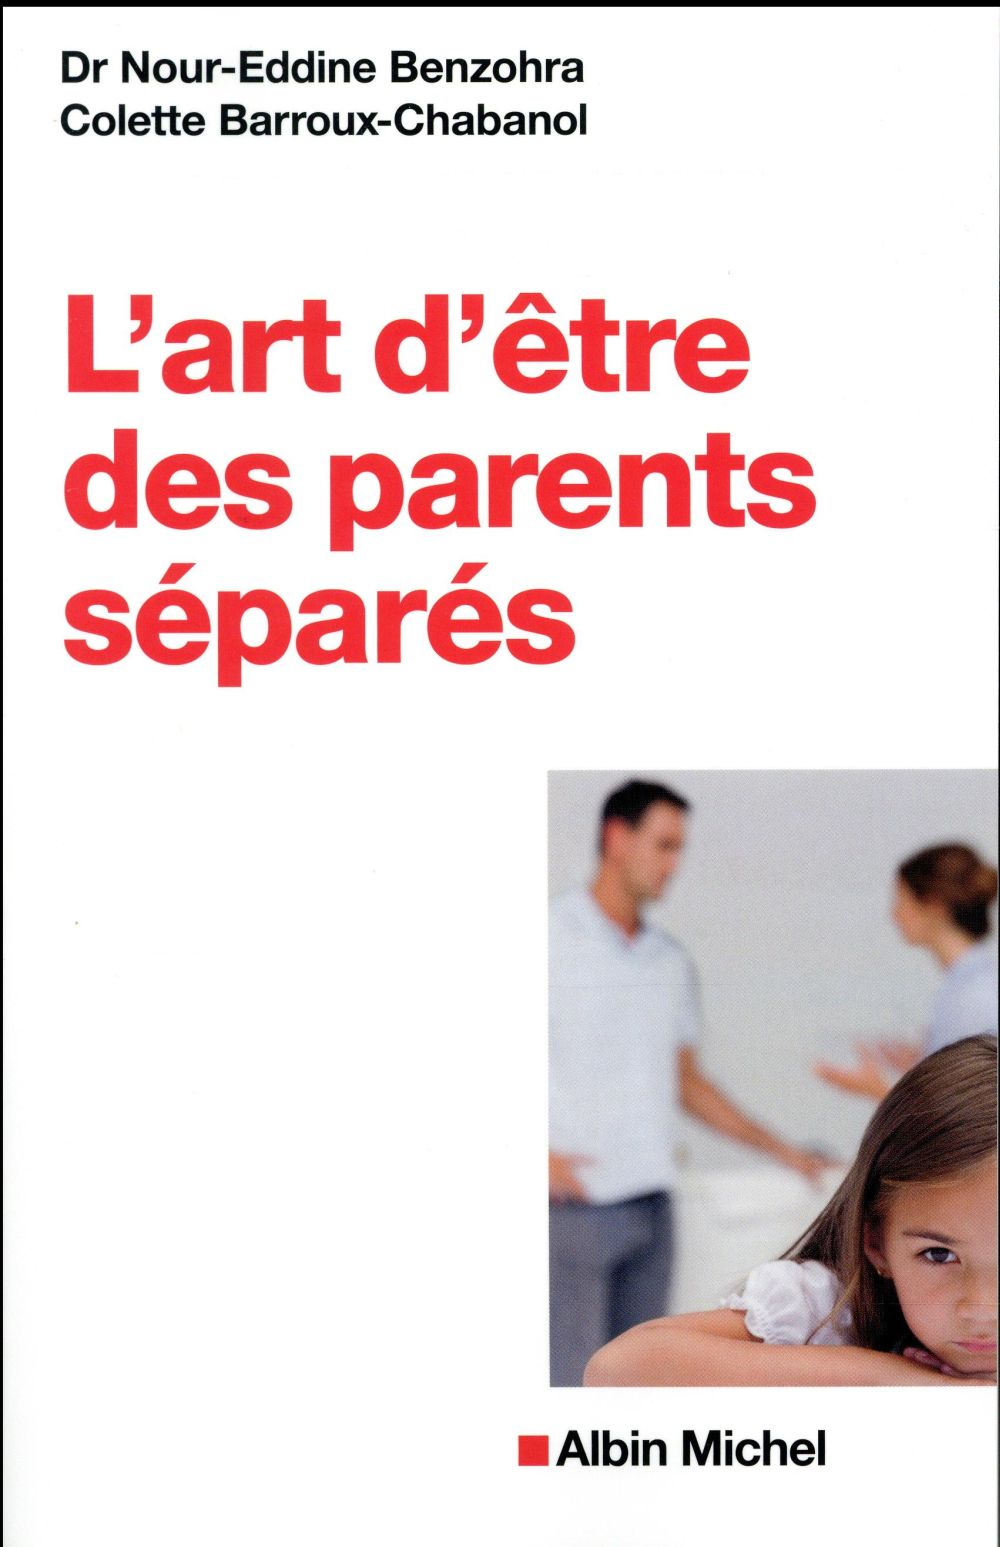 L'ART D'ETRE DES PARENTS SEPARES